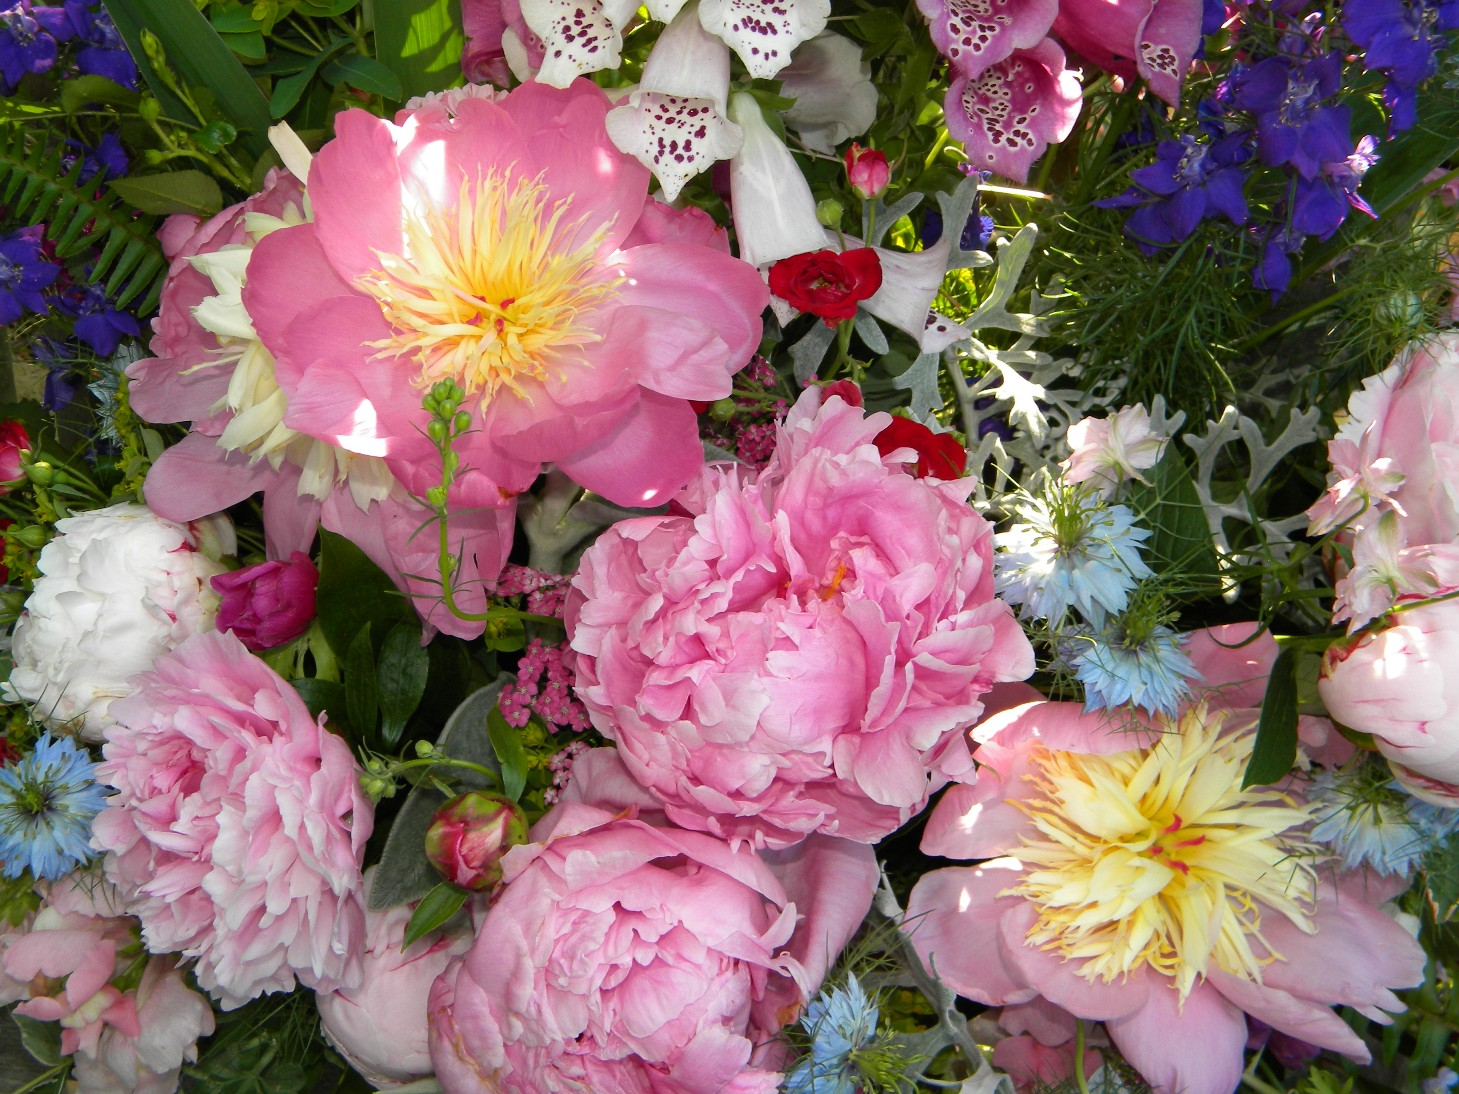 Garden Delight Rose Garden Delights Peonies And